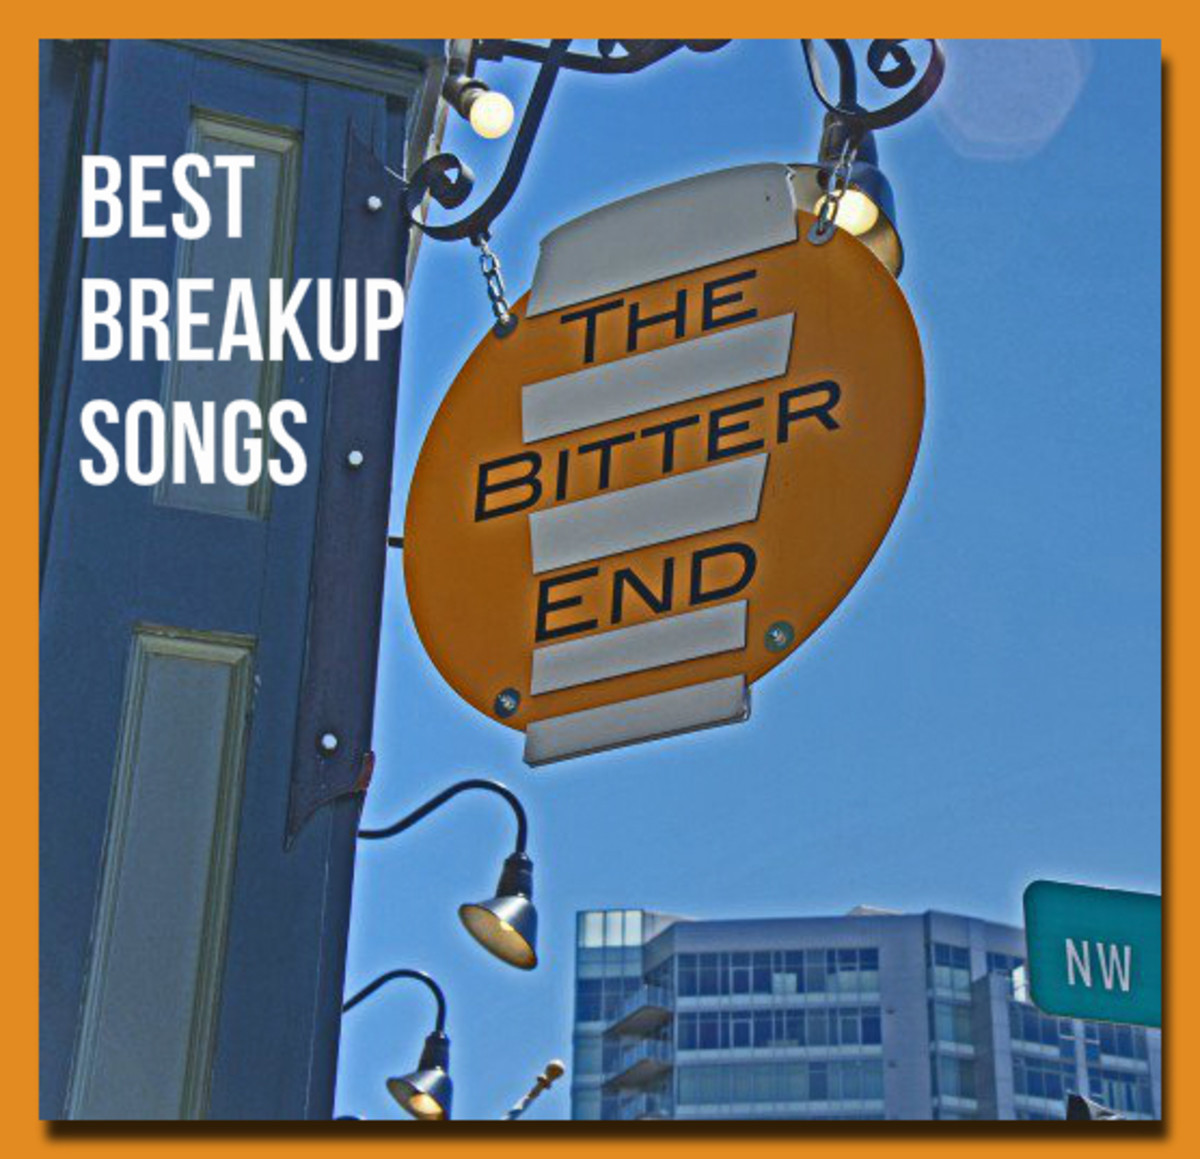 105 Songs About Break Ups, Heartbreak, and Divorce